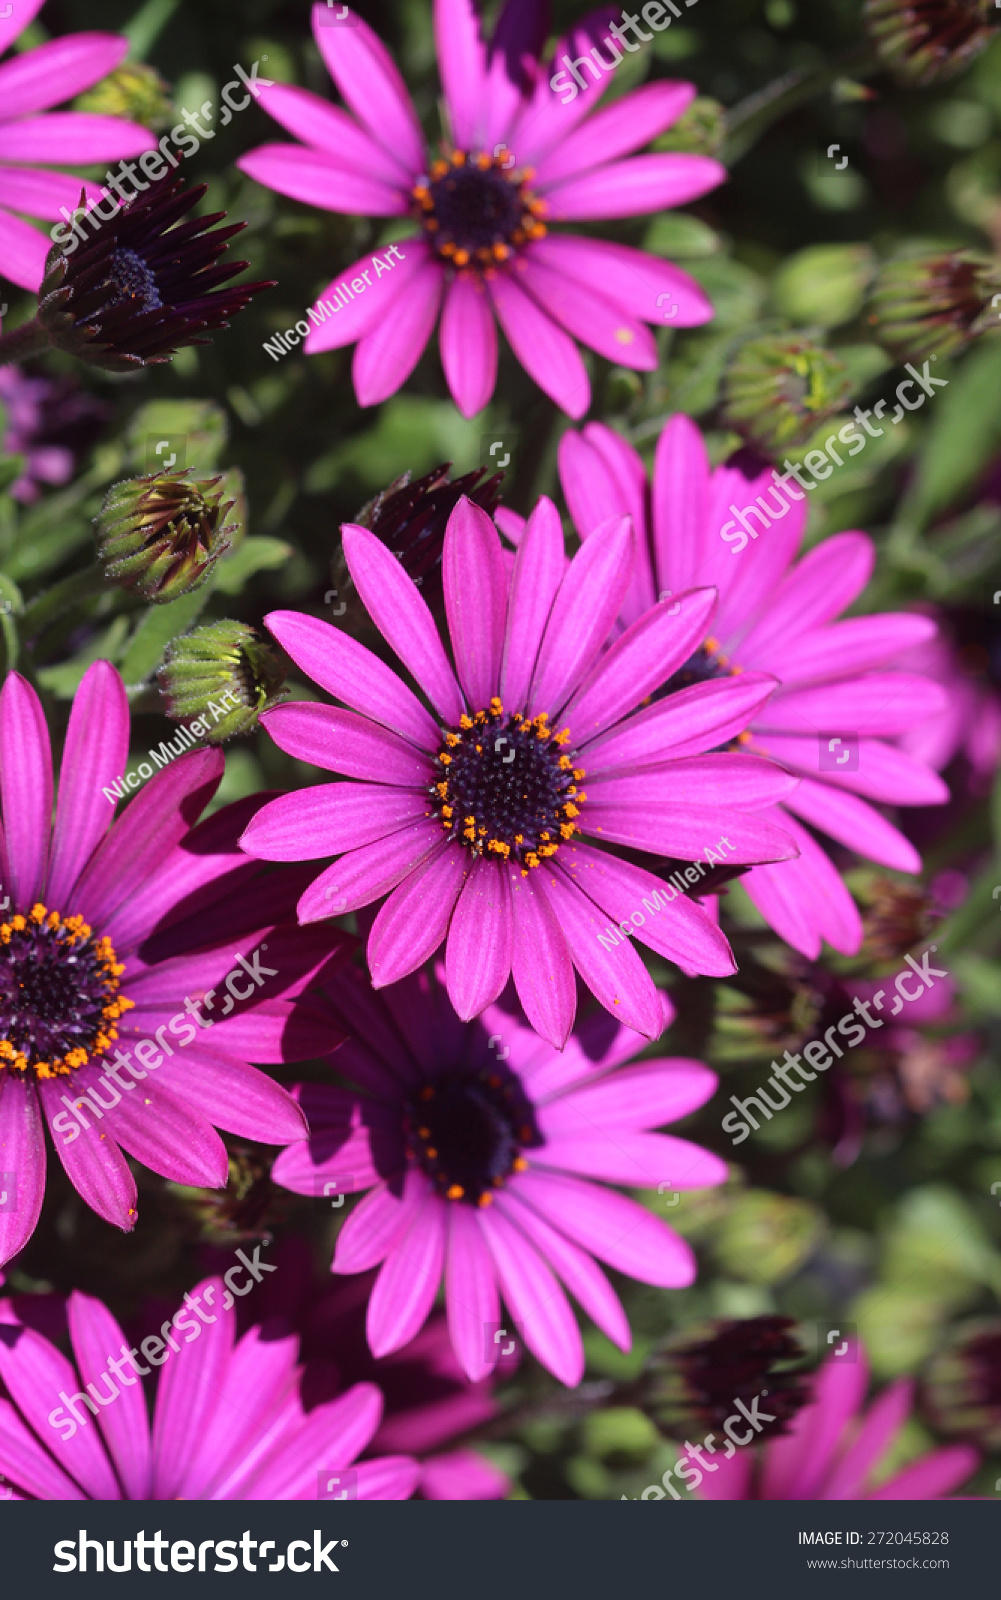 Daisies Other Spring Flowers Bray Co Stock Photo Royalty Free